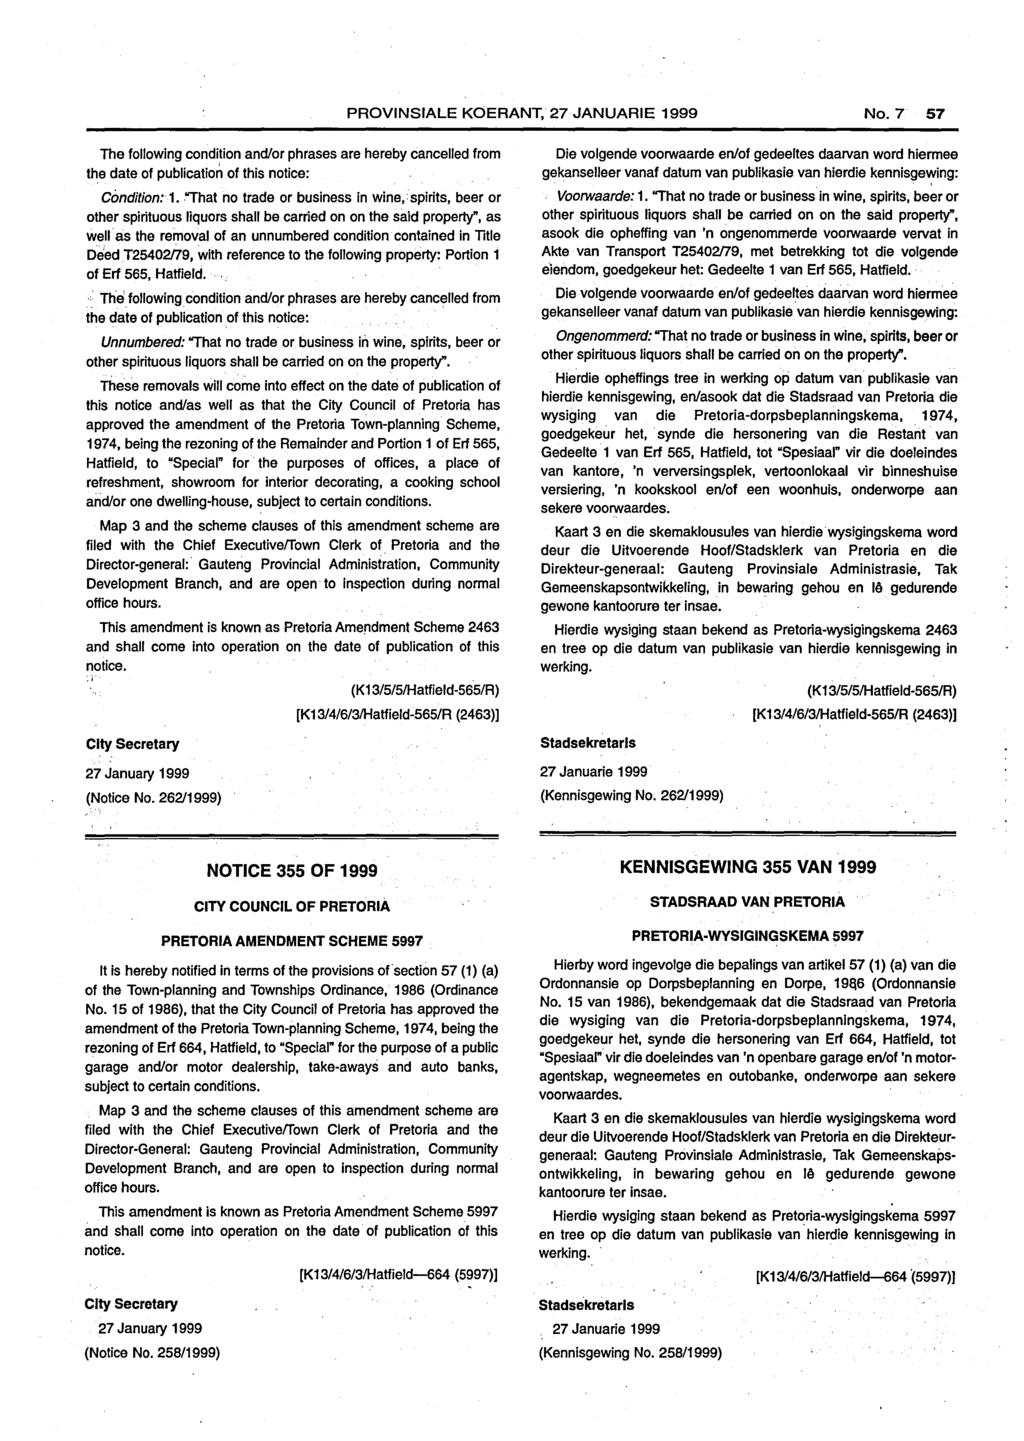 PROVINSIALE KOERANT, 27 JANUARIE 1999 No.7 57 The following condition and/or phrases are hereby cancelled from the date of publication of this notice: Condition: 1.